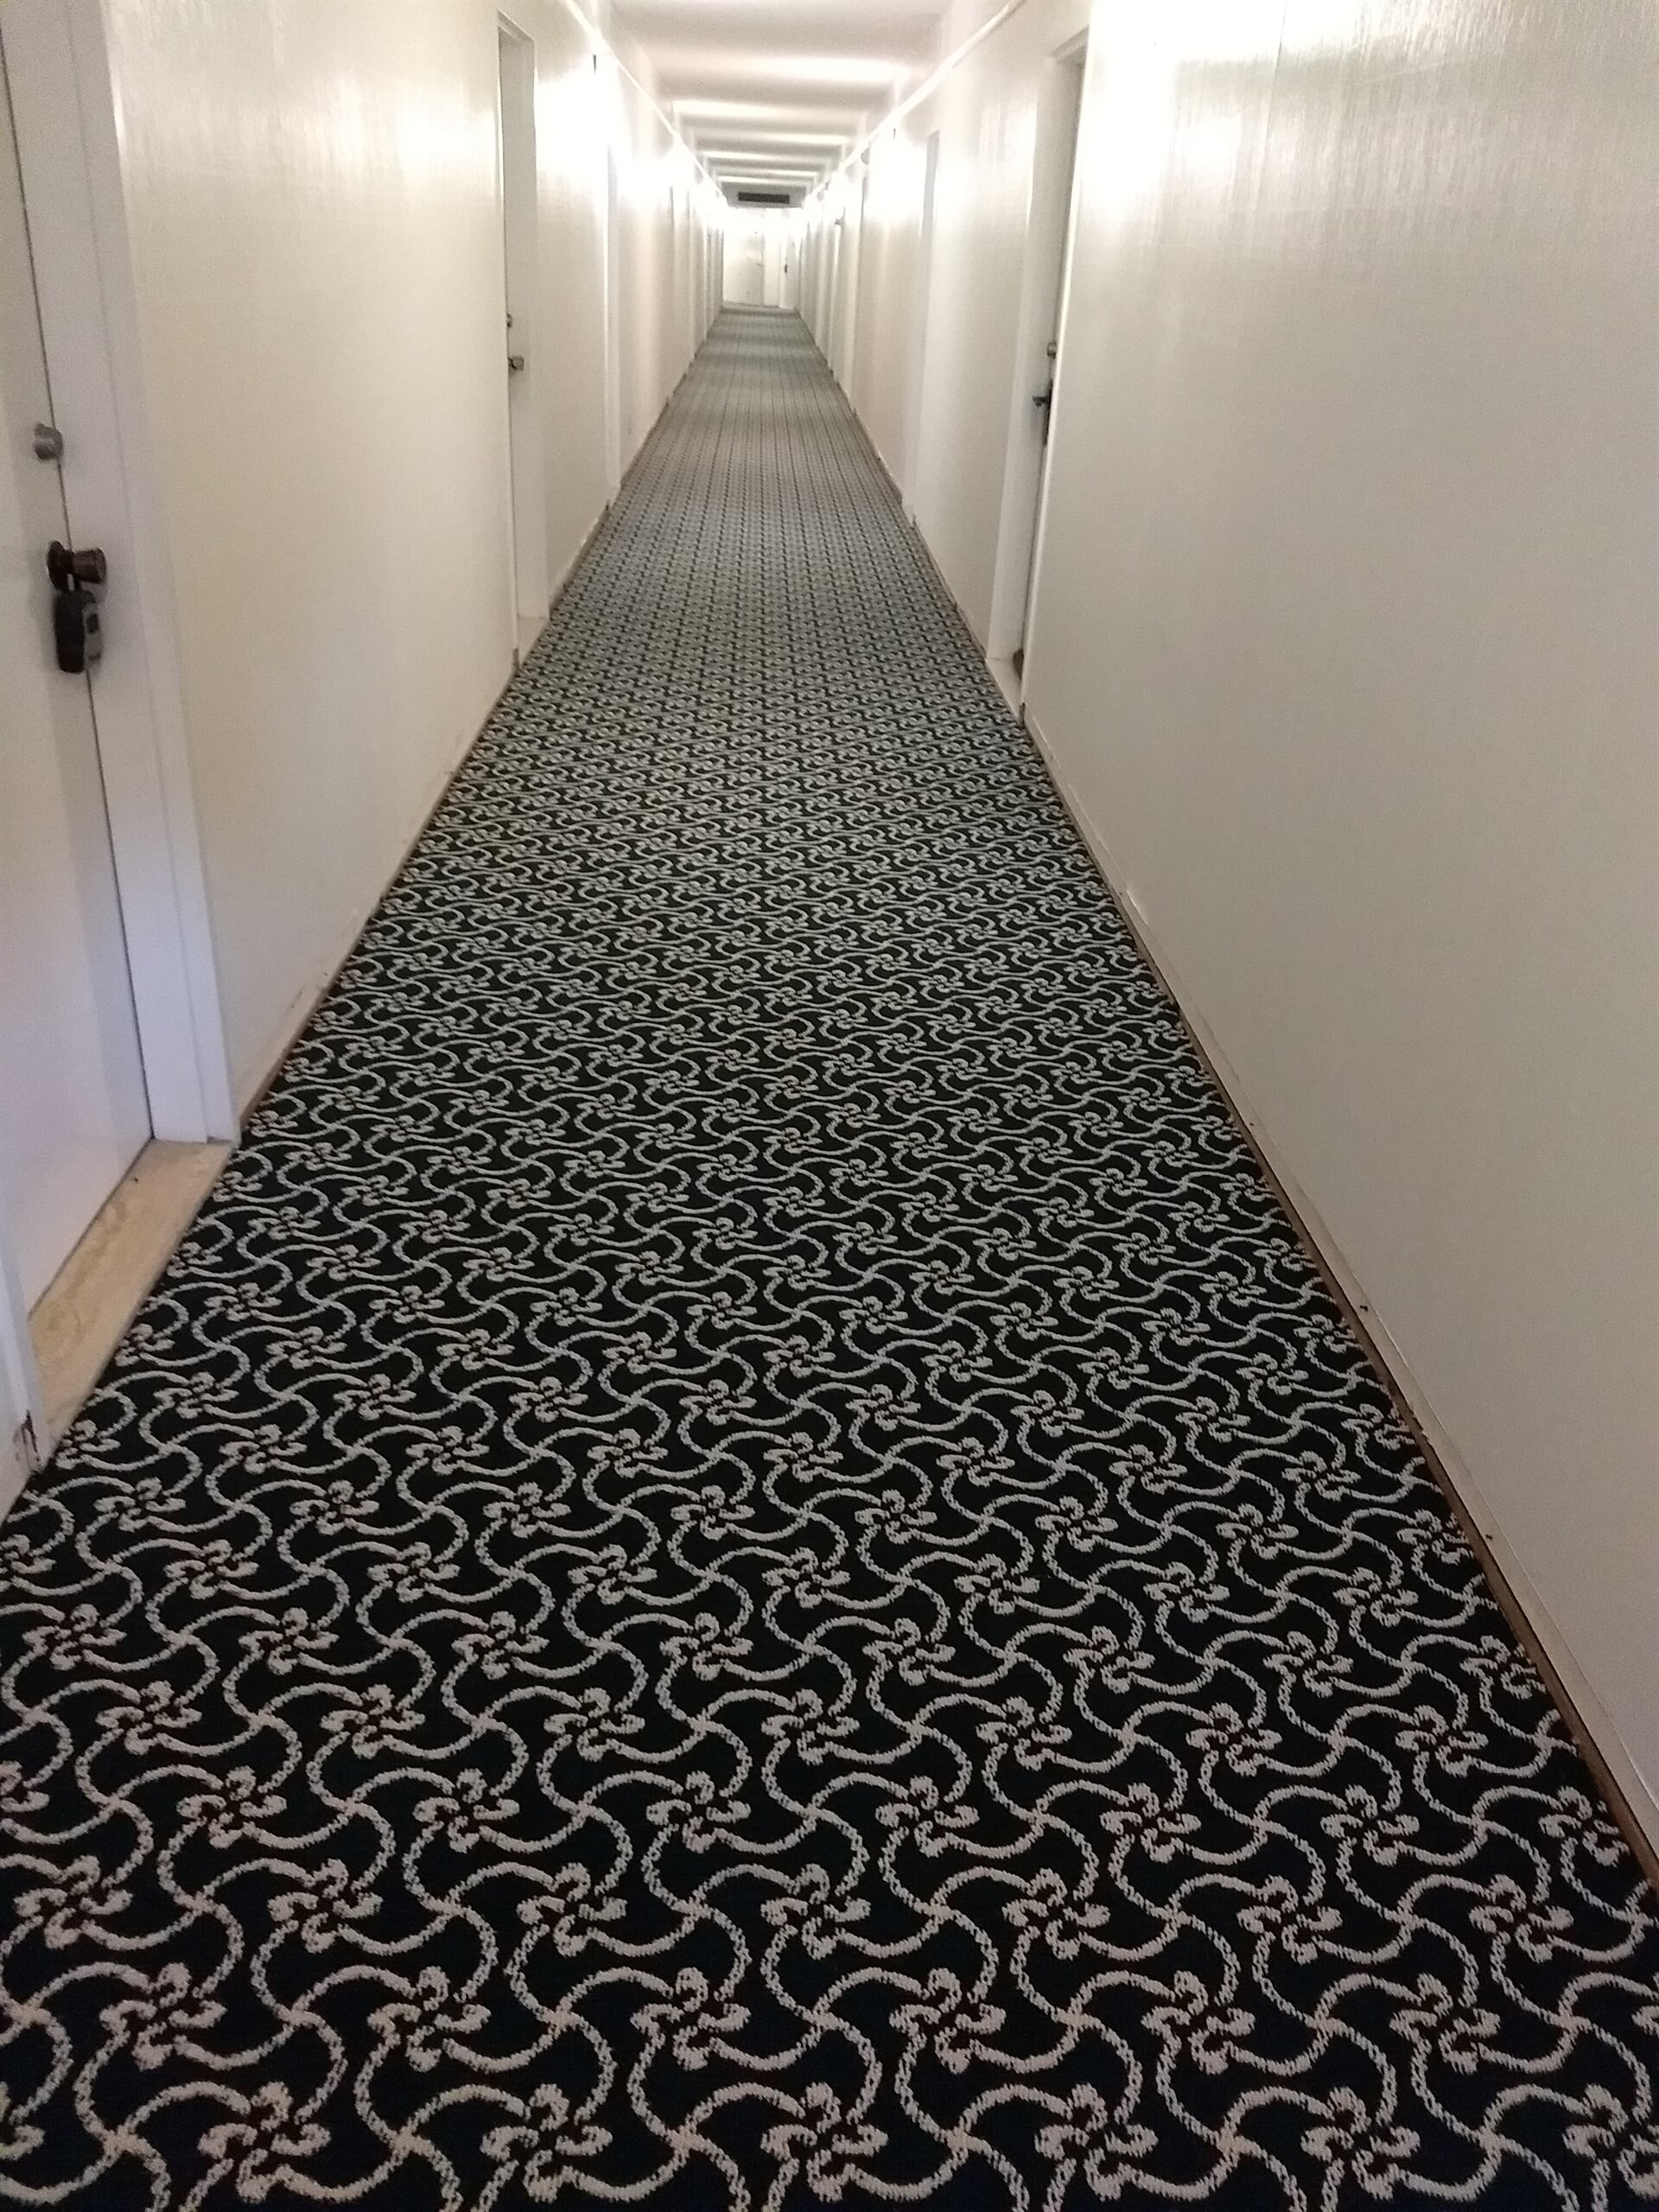 Commercial Carpet Installation from Capitol Carpet & Tile and Window Fashions in Delray Beach, FL